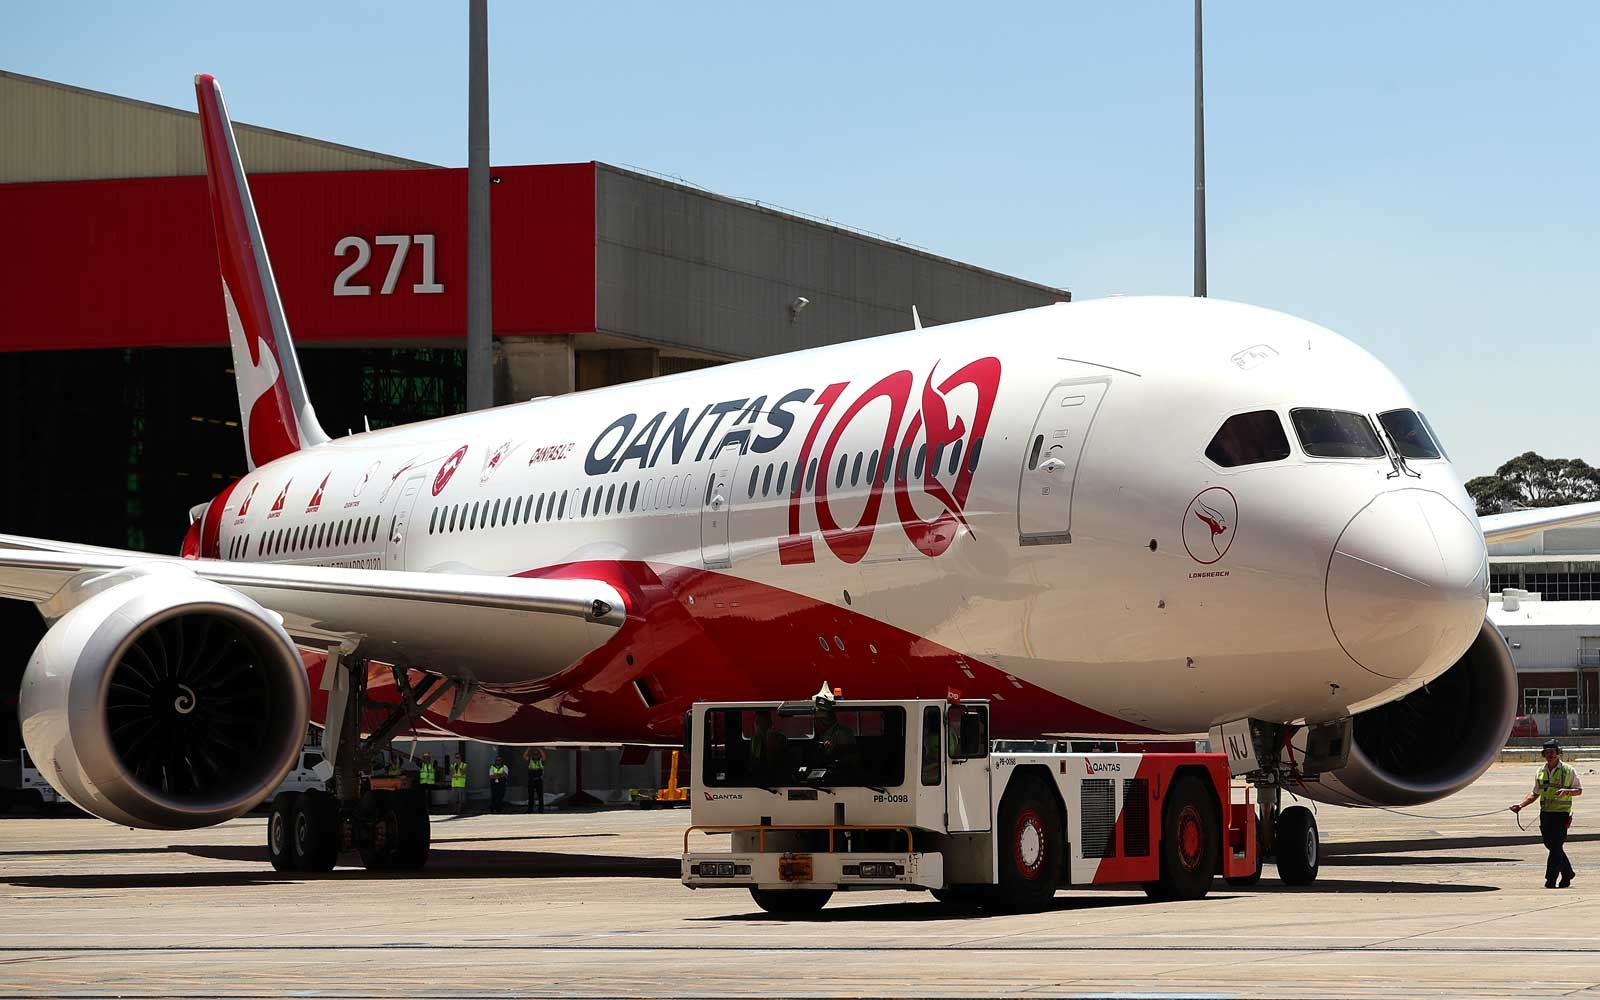 Qantas is selling $100 one-way tickets to Australia — but you better act fast